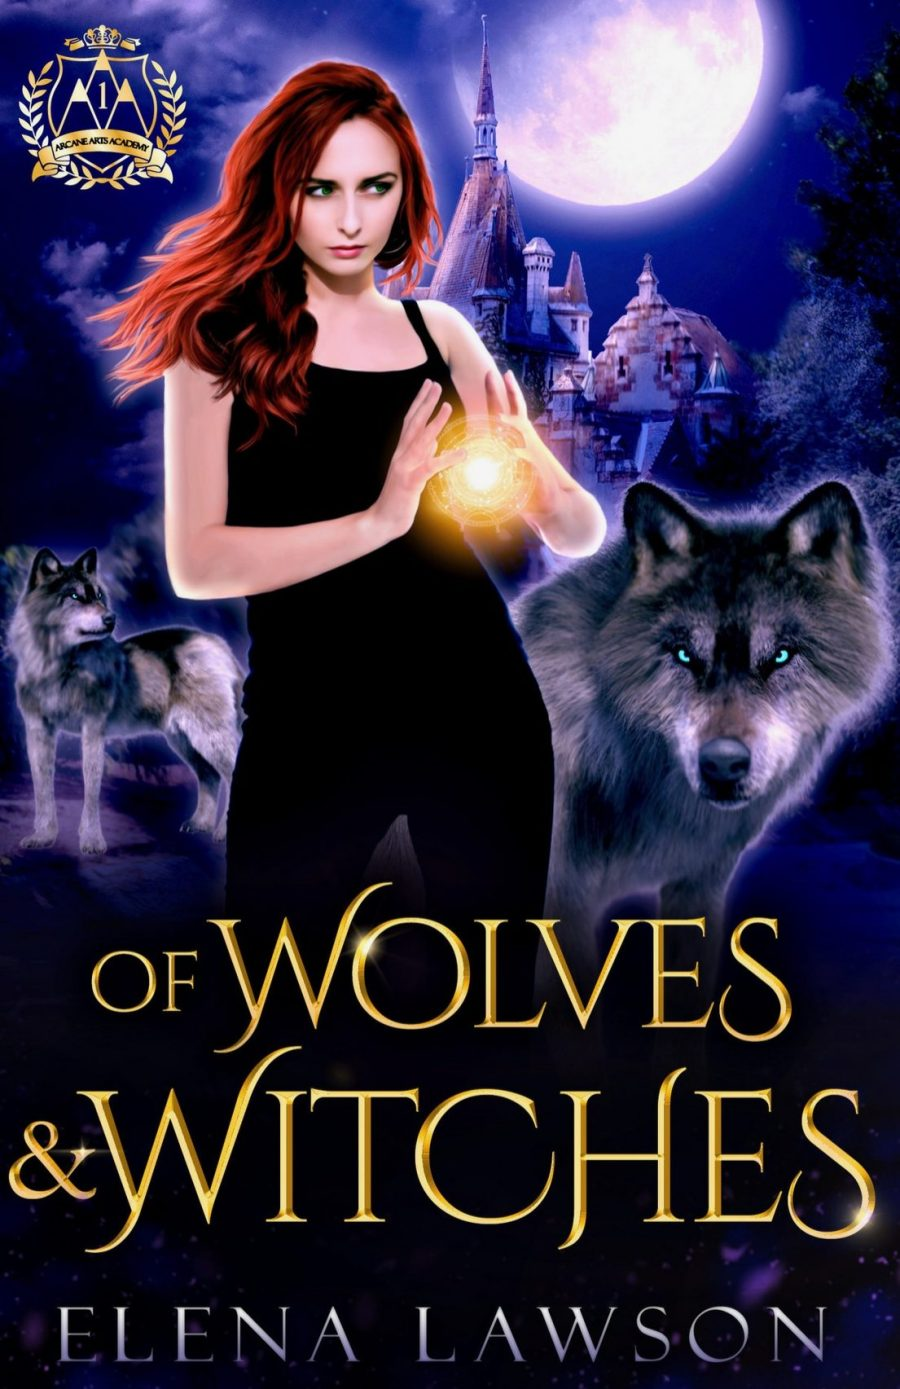 Of Wolves and Witches by Elena Lawson – A Book Review